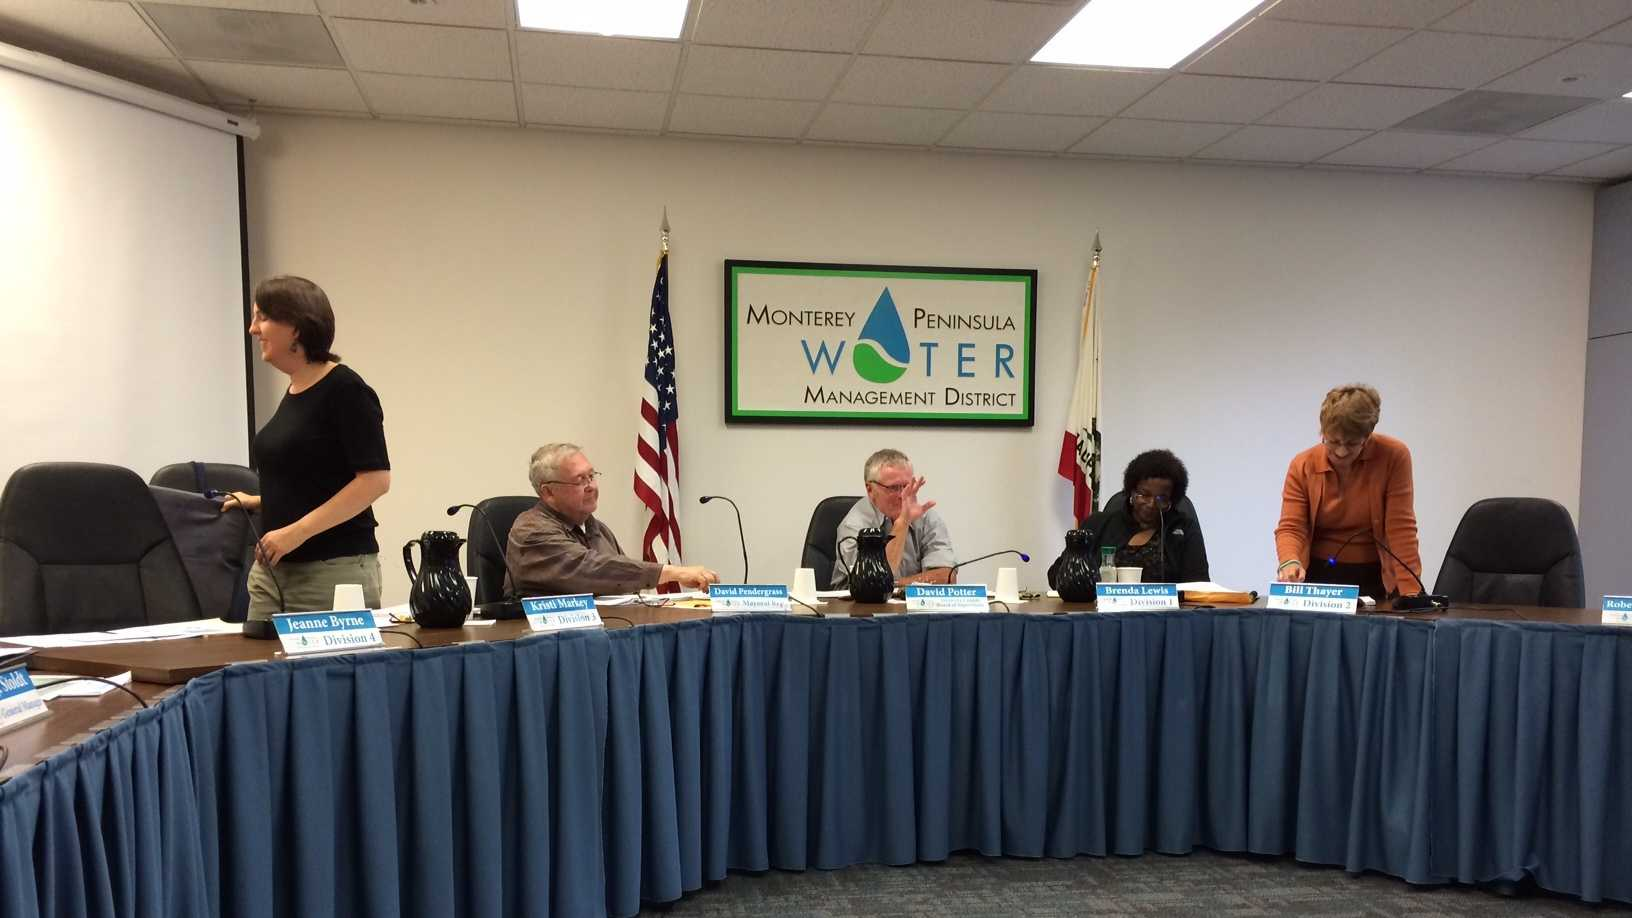 The Monterey Peninsula Water Management District voted to approve a $75,000 advertisement campaign to raise awareness for water conservation.